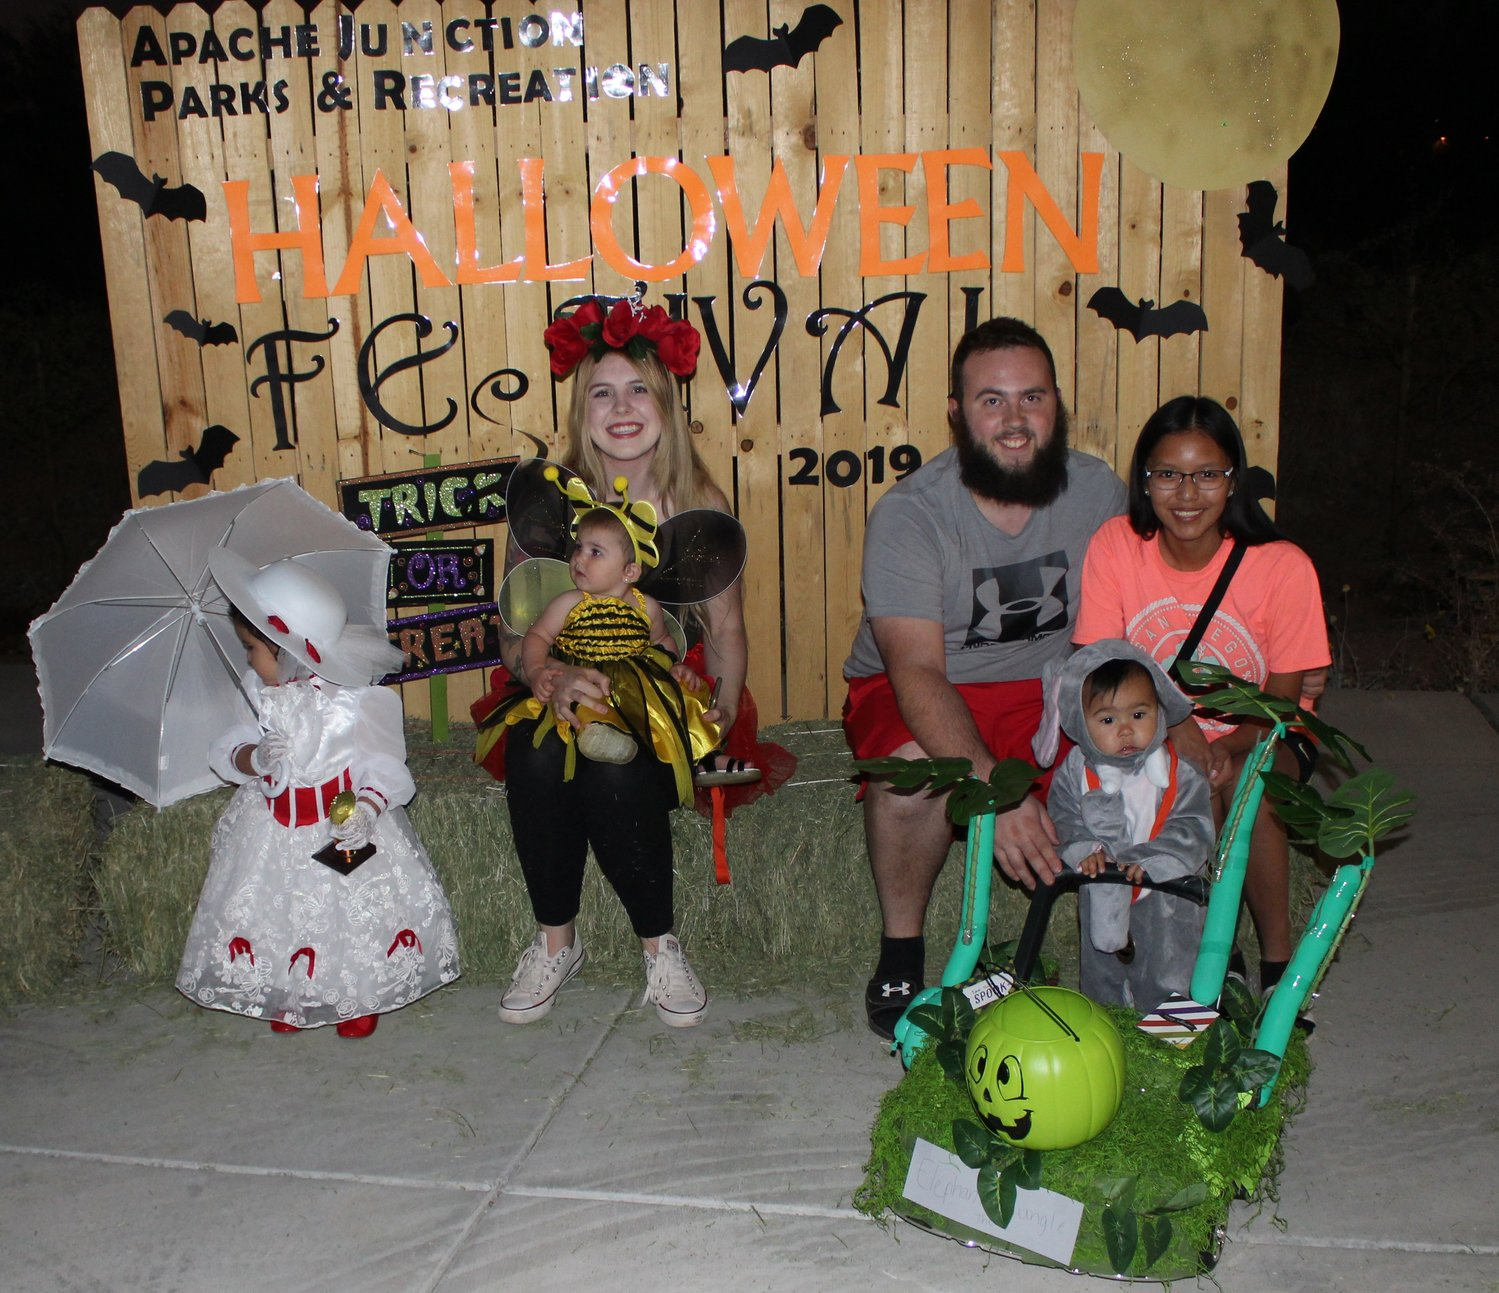 Age 2 and younger category winners at Apache Junction's 2019 annual Halloween festival were: First, Thaliya Celis-Lupeli; second,  Lydia Dempsey-Watchman; and third,  Emily Lake.